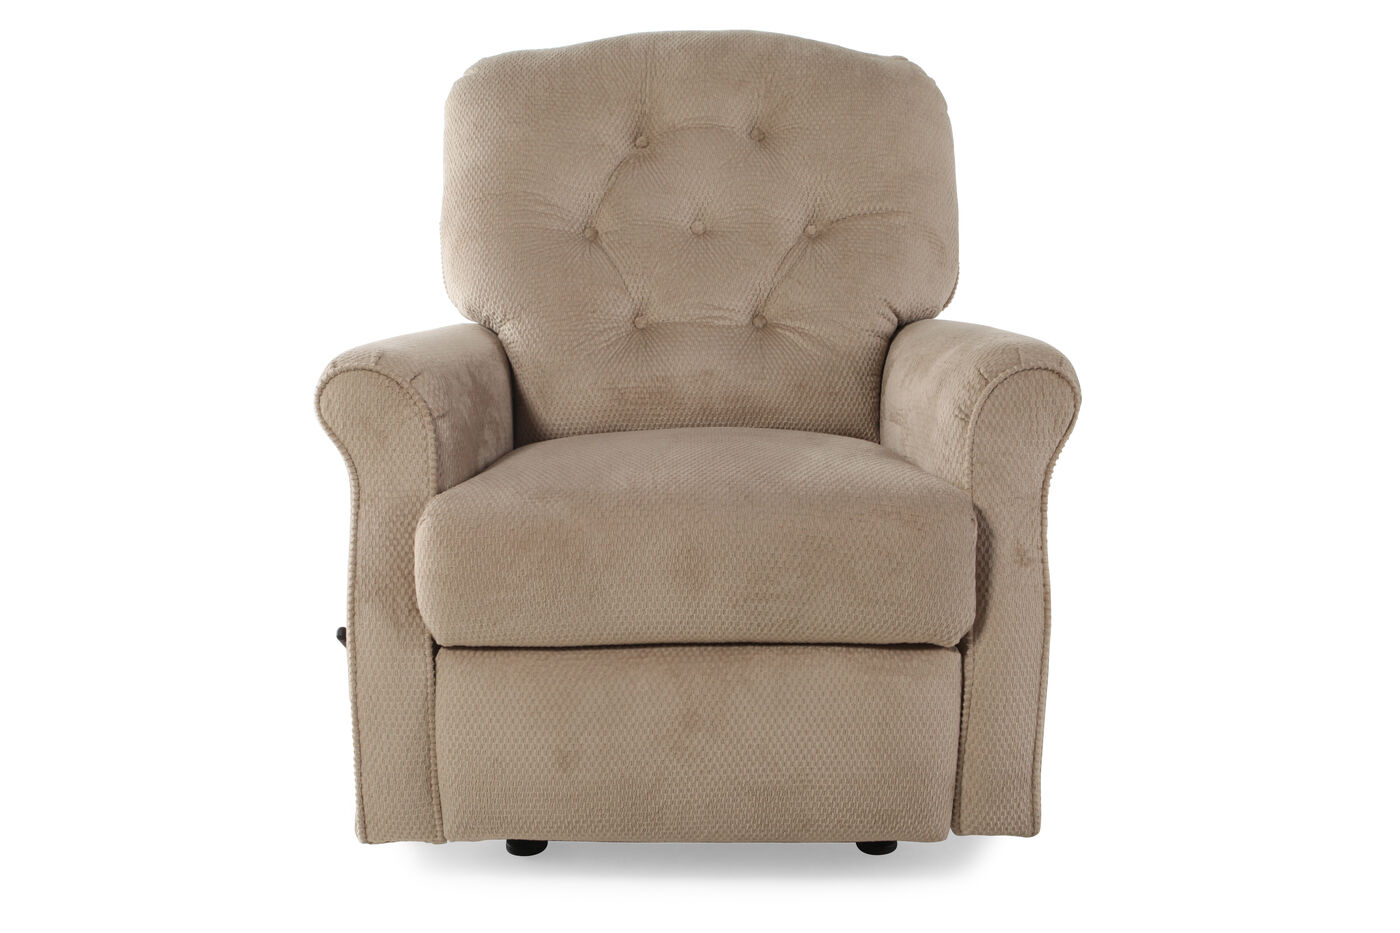 Lane priscilla rocker recliner mathis brothers furniture for Living room with two recliners